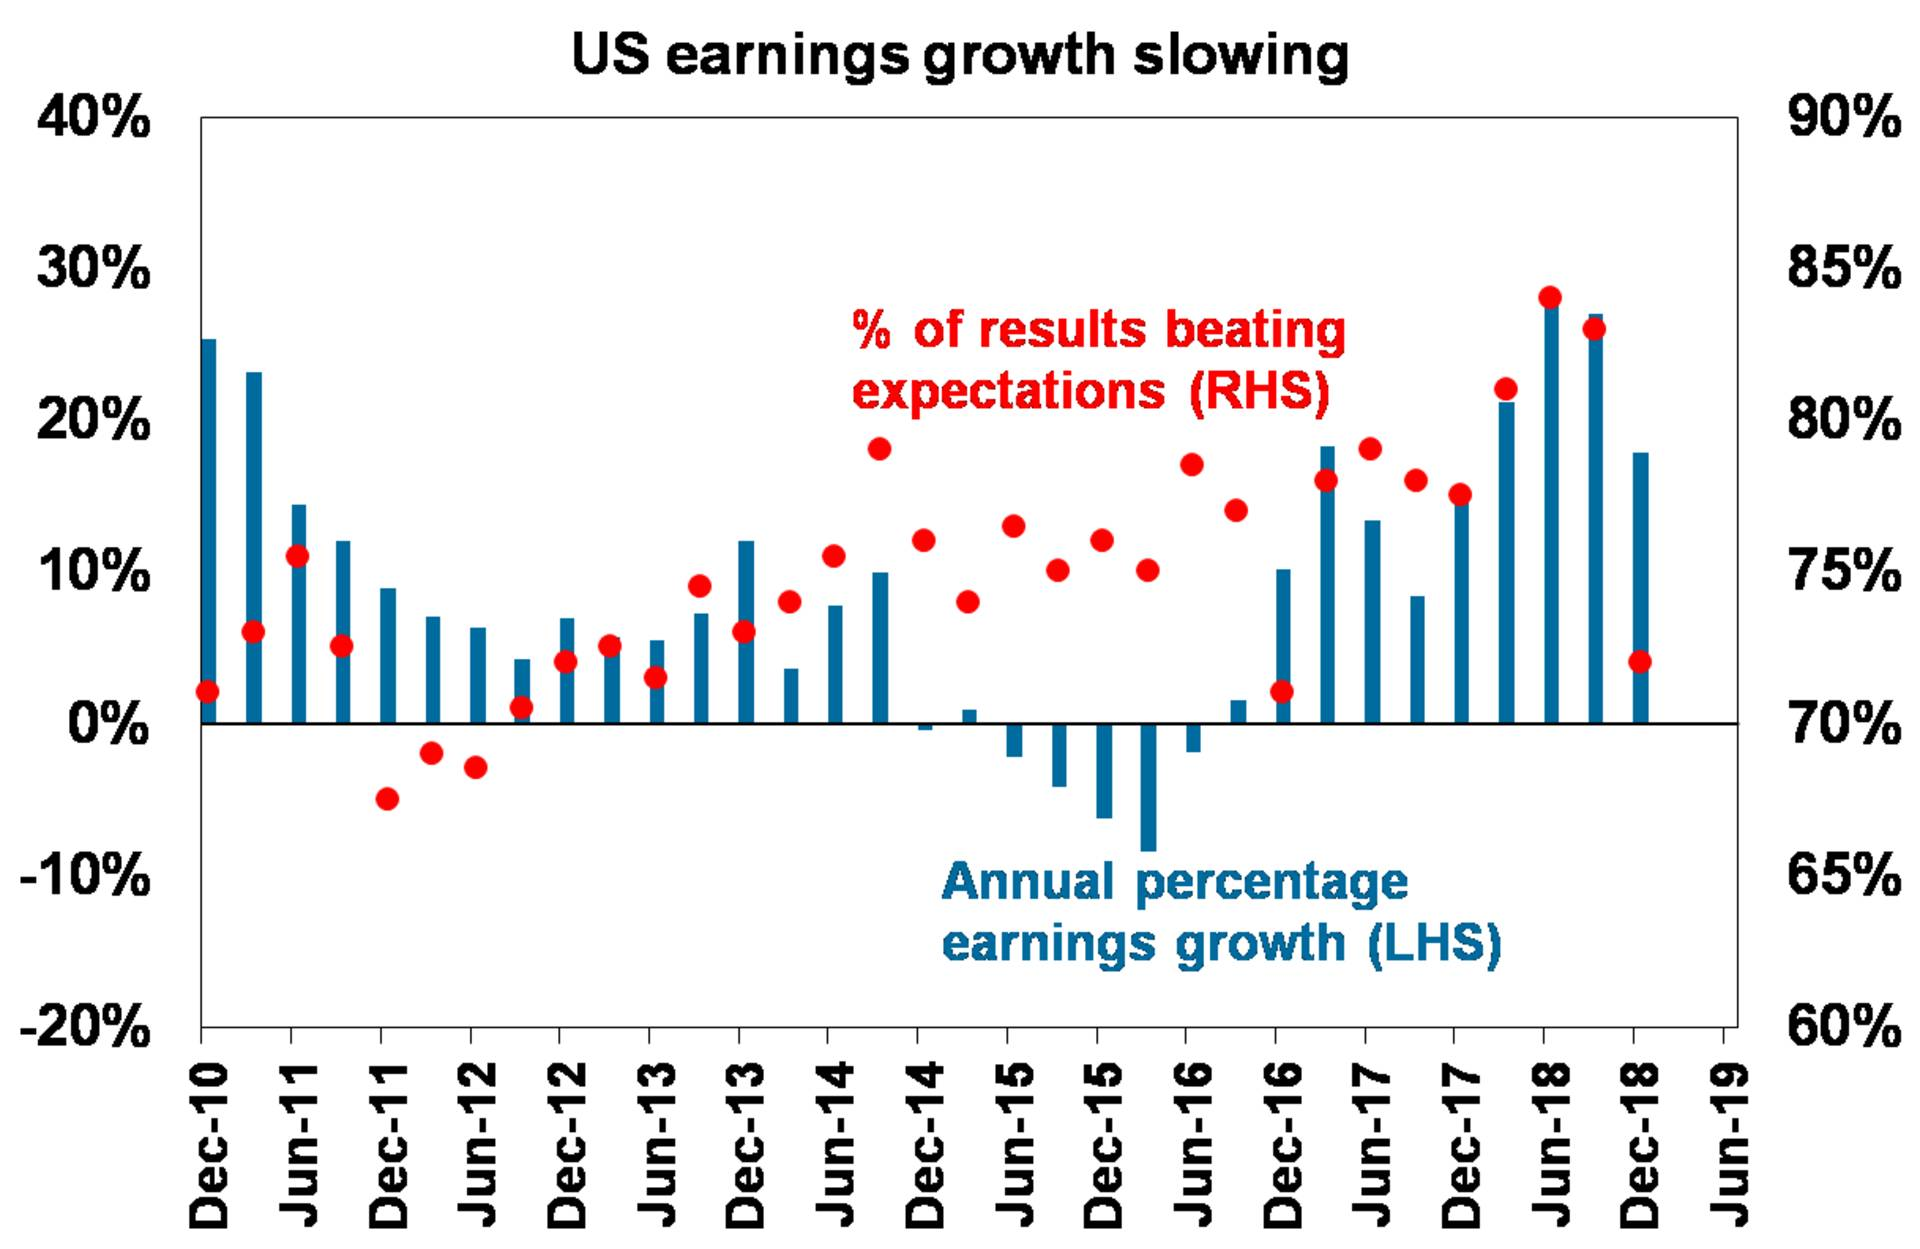 US earnings growth slowing